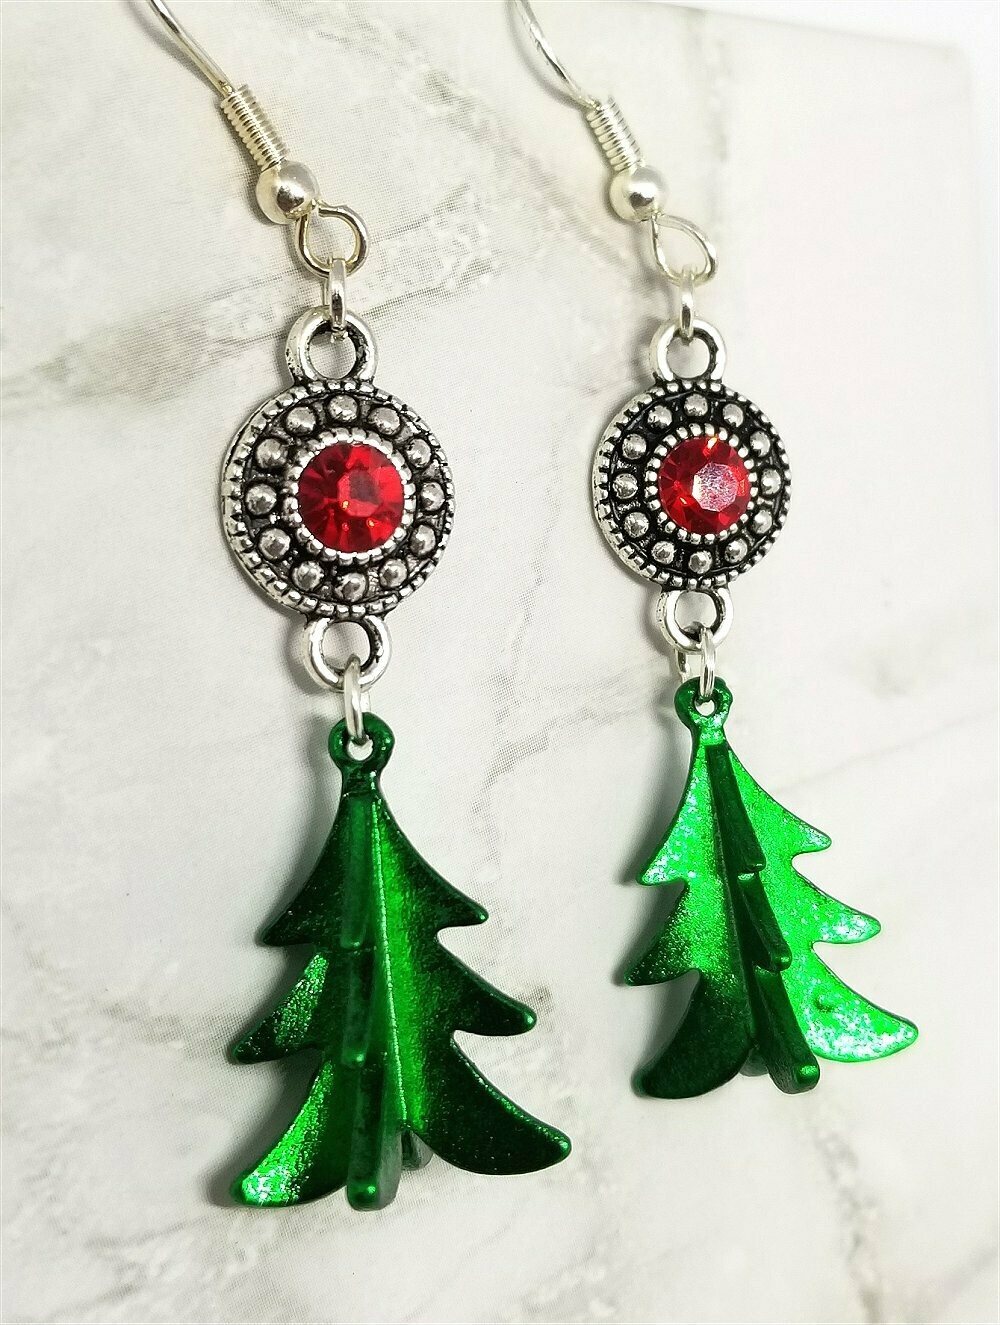 Green Metal Christmas Tree Charm Earrings with Red Crystal Charms